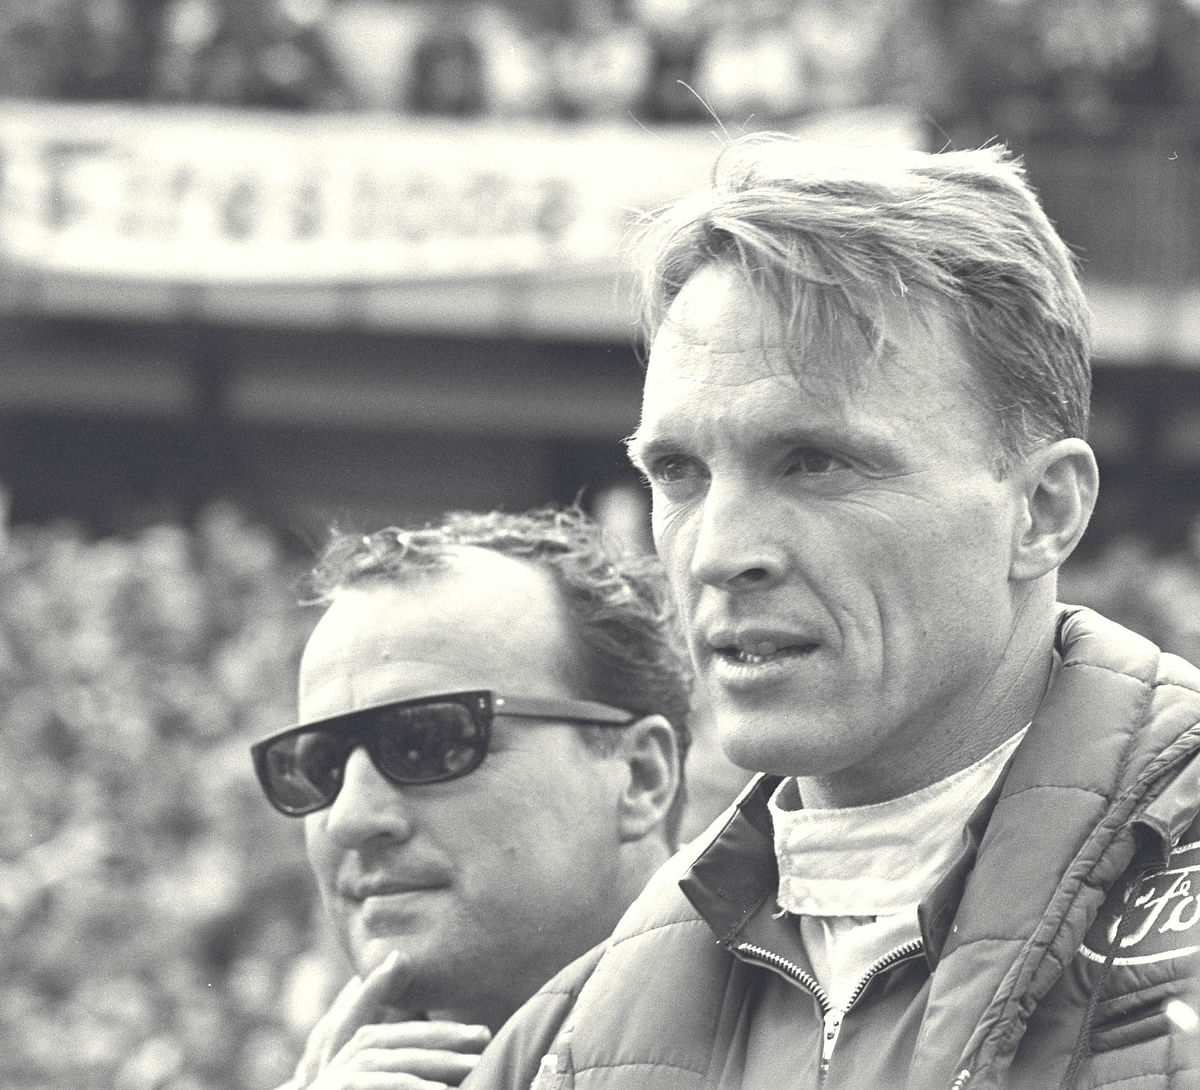 Adil's blog: Dan Gurney – the all-American racer is no more!